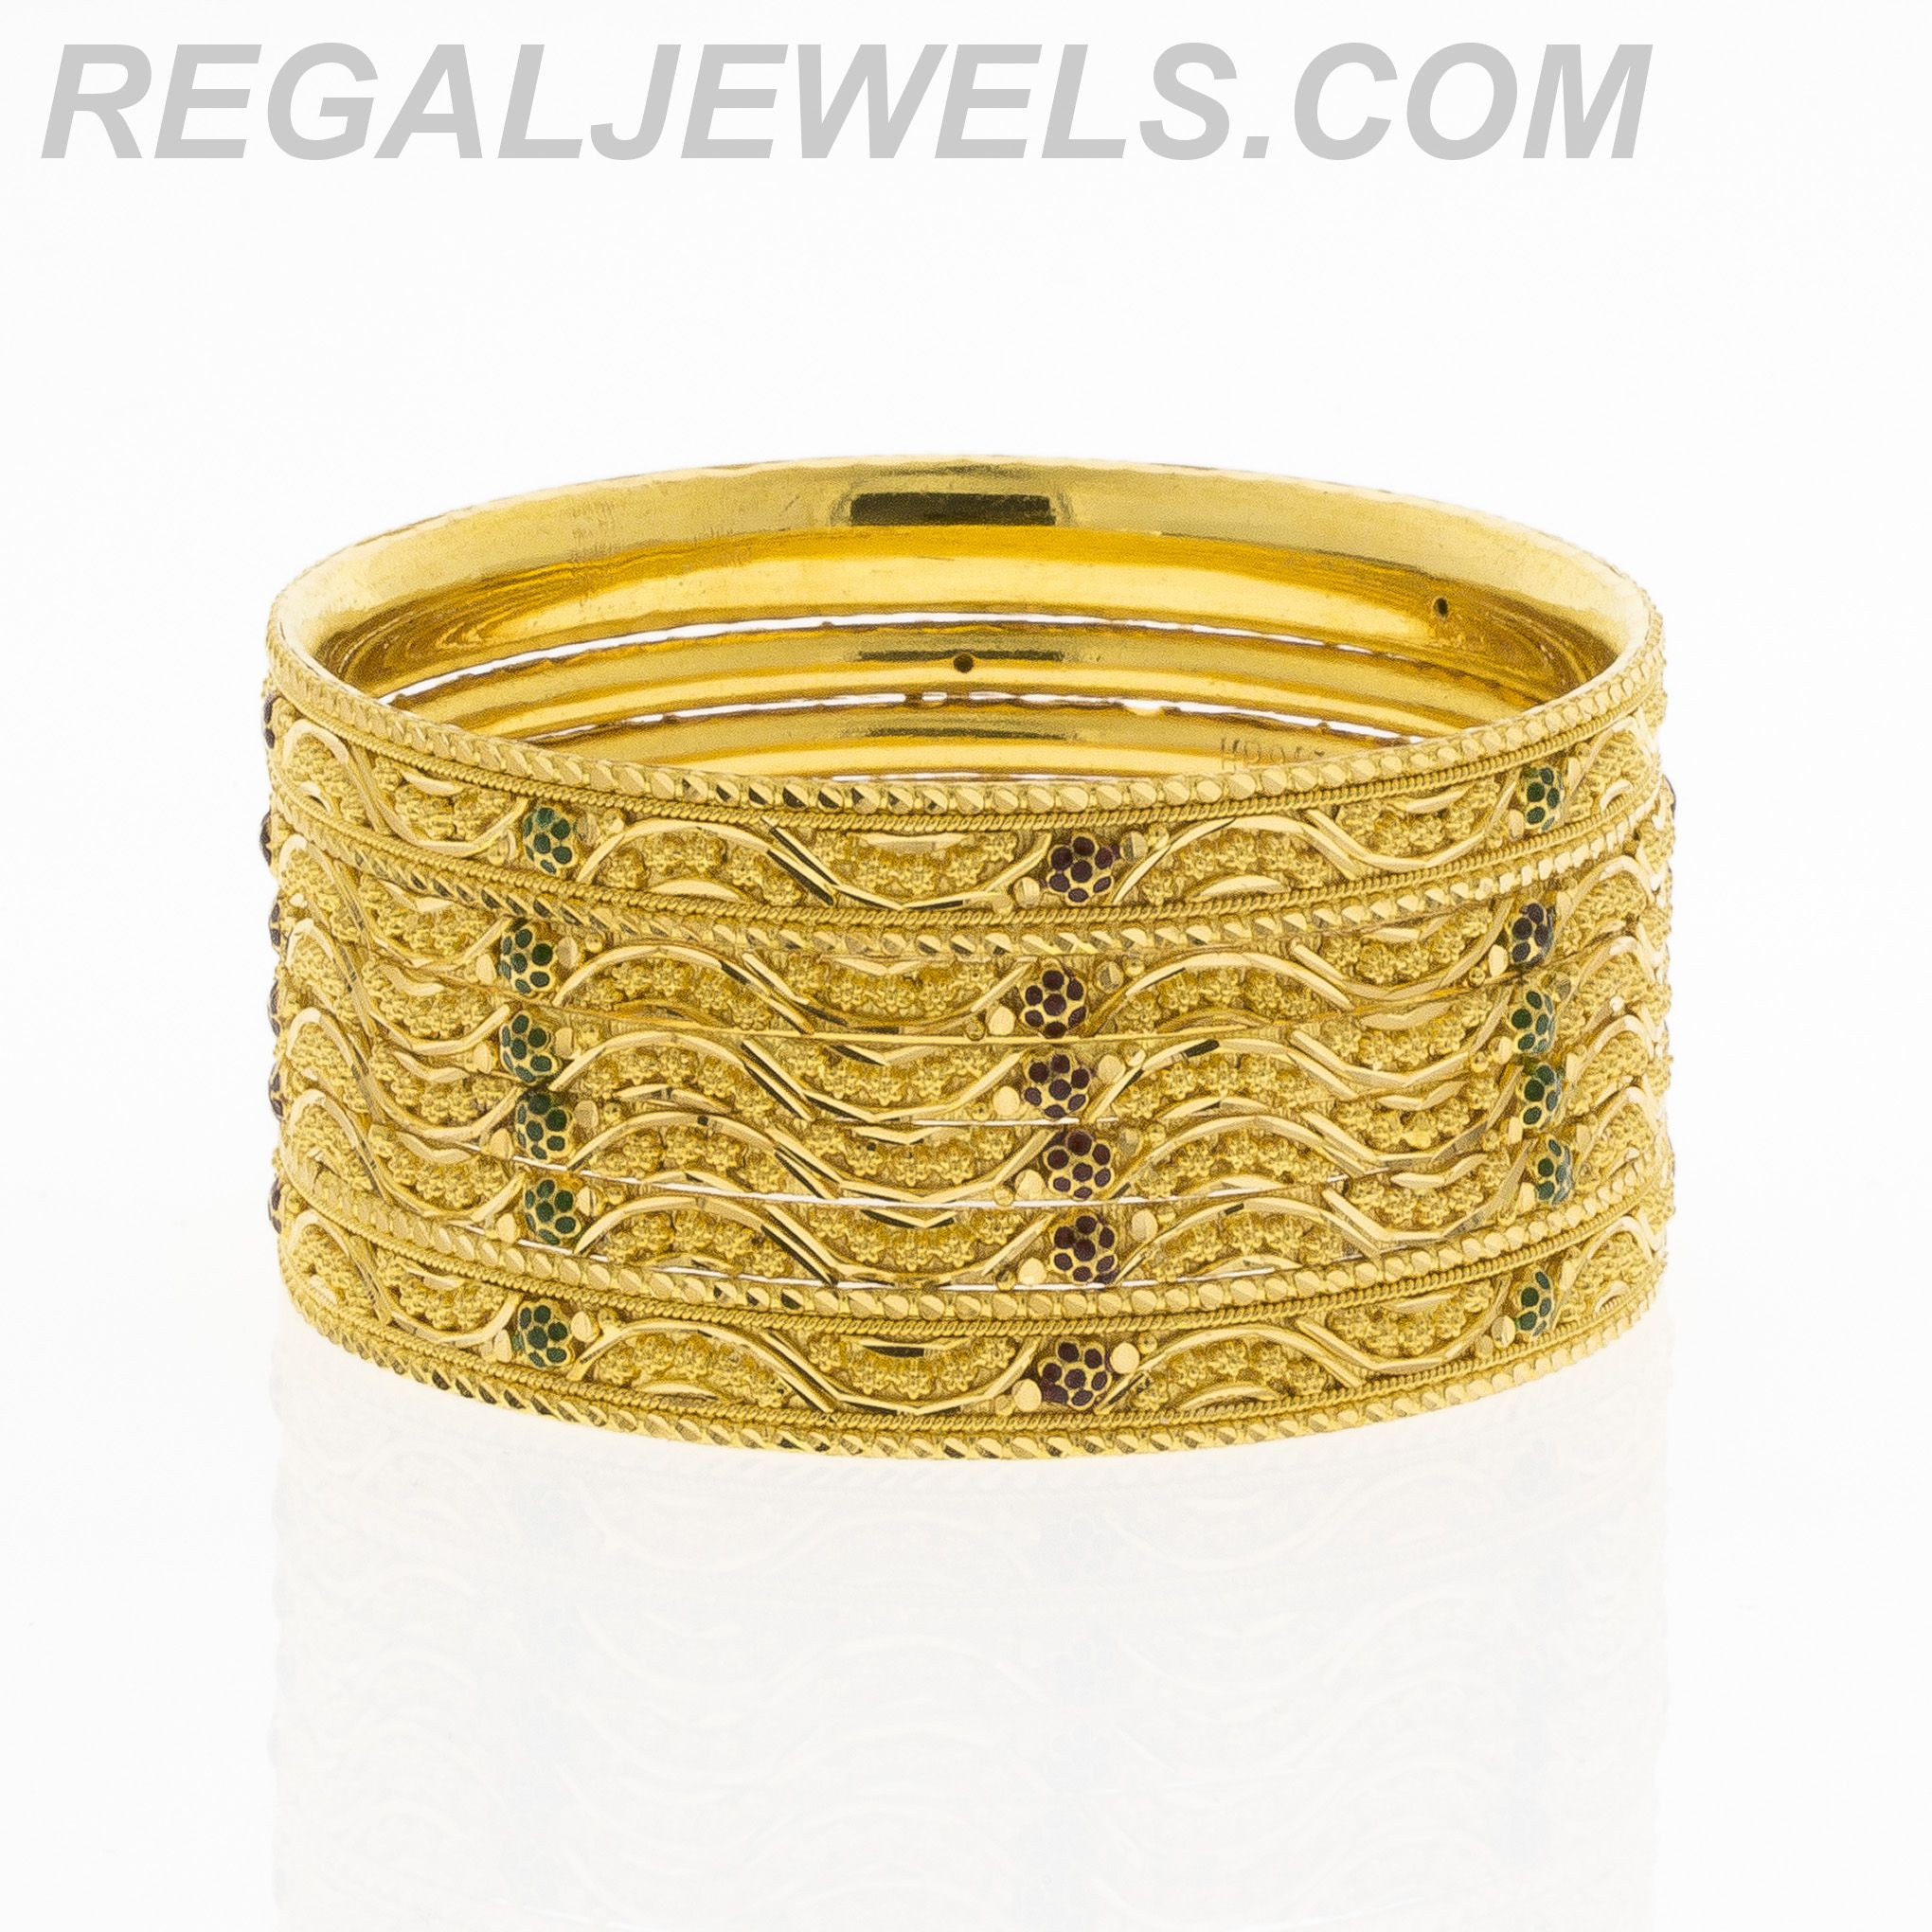 set bangles alex shipping today three overstock and ladybug free jewelry of ani watches product